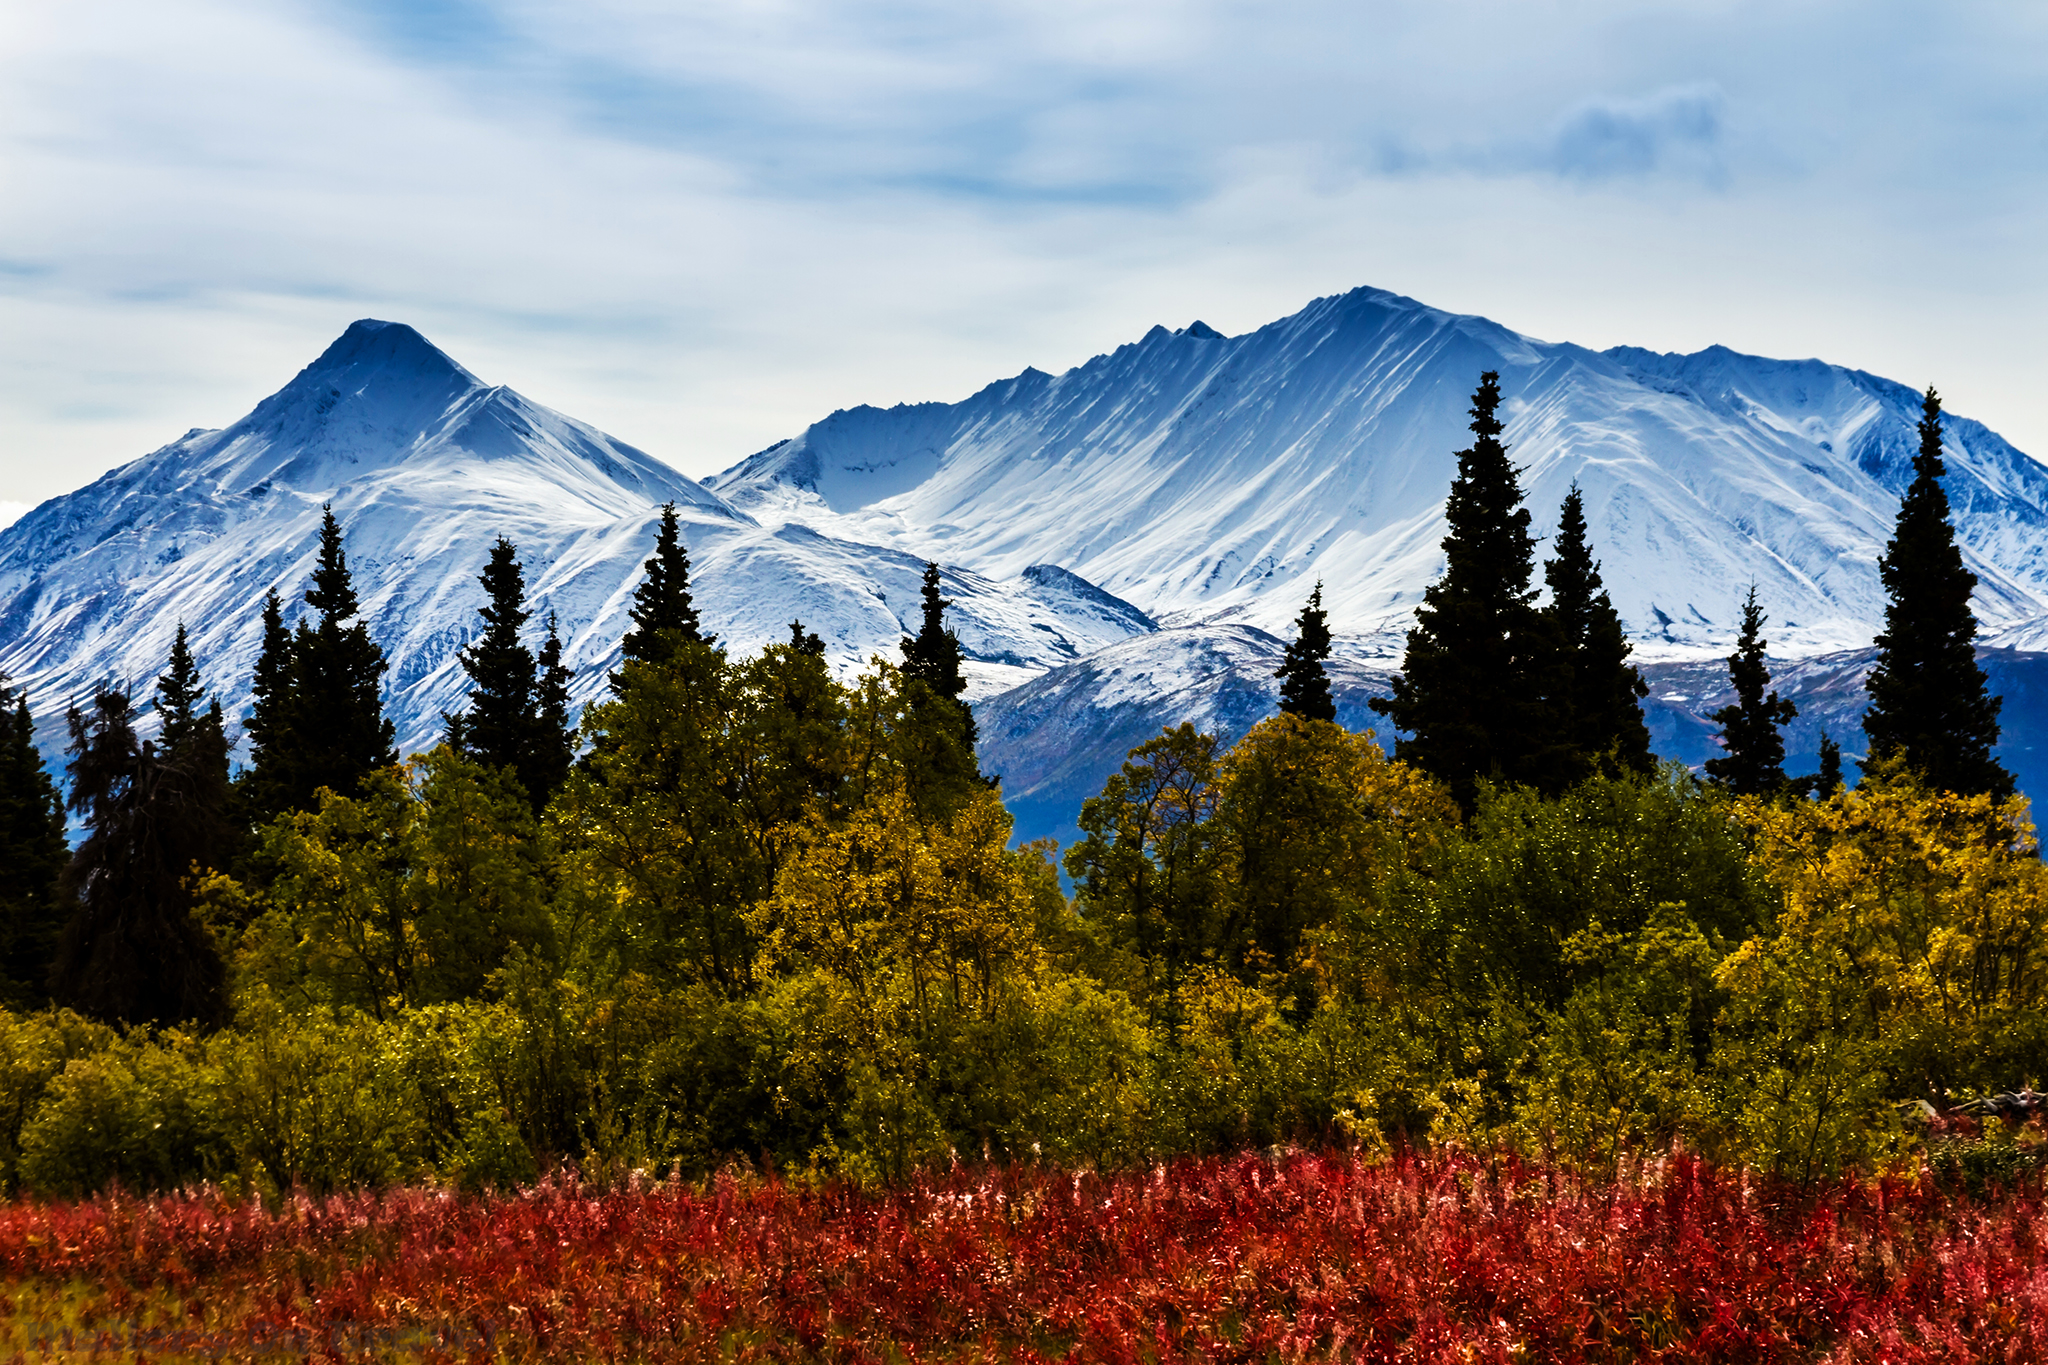 Autumn Fall Live Wallpaper Travel In The Yukon Road Trip Photography Mallory On Travel